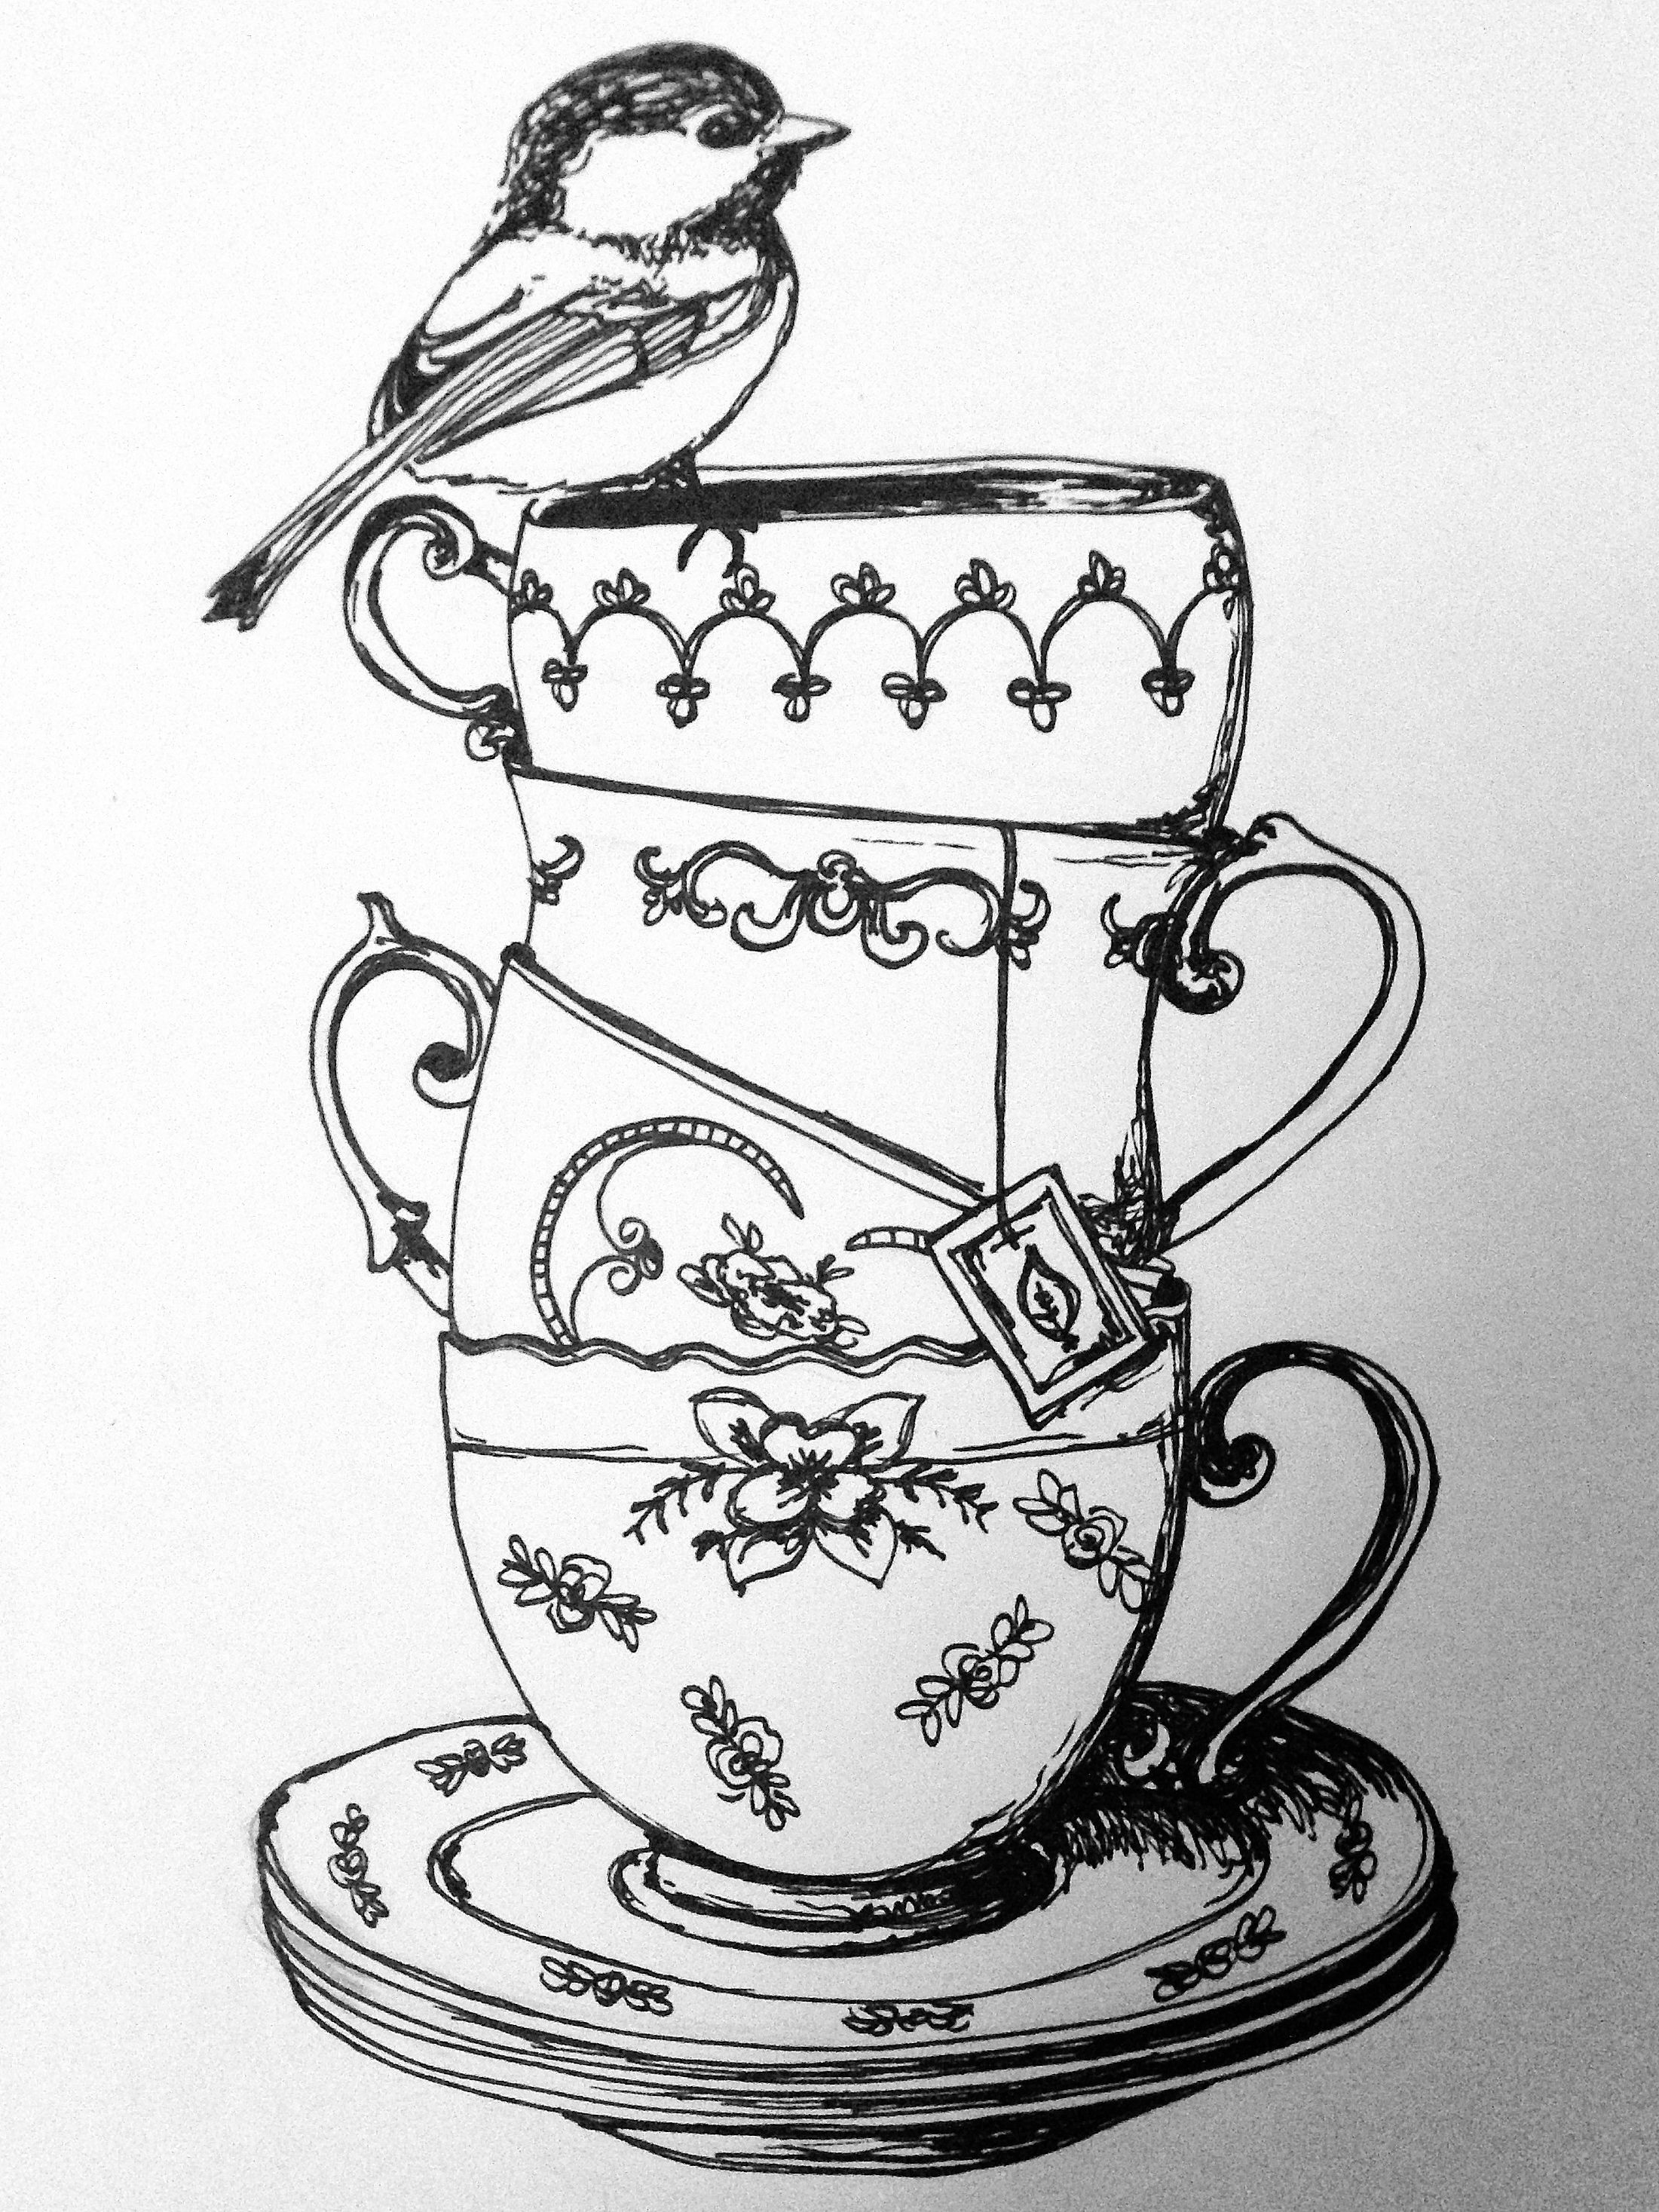 FROM WHO IS THIS?!?! pretty teacups sketch please let me know ...